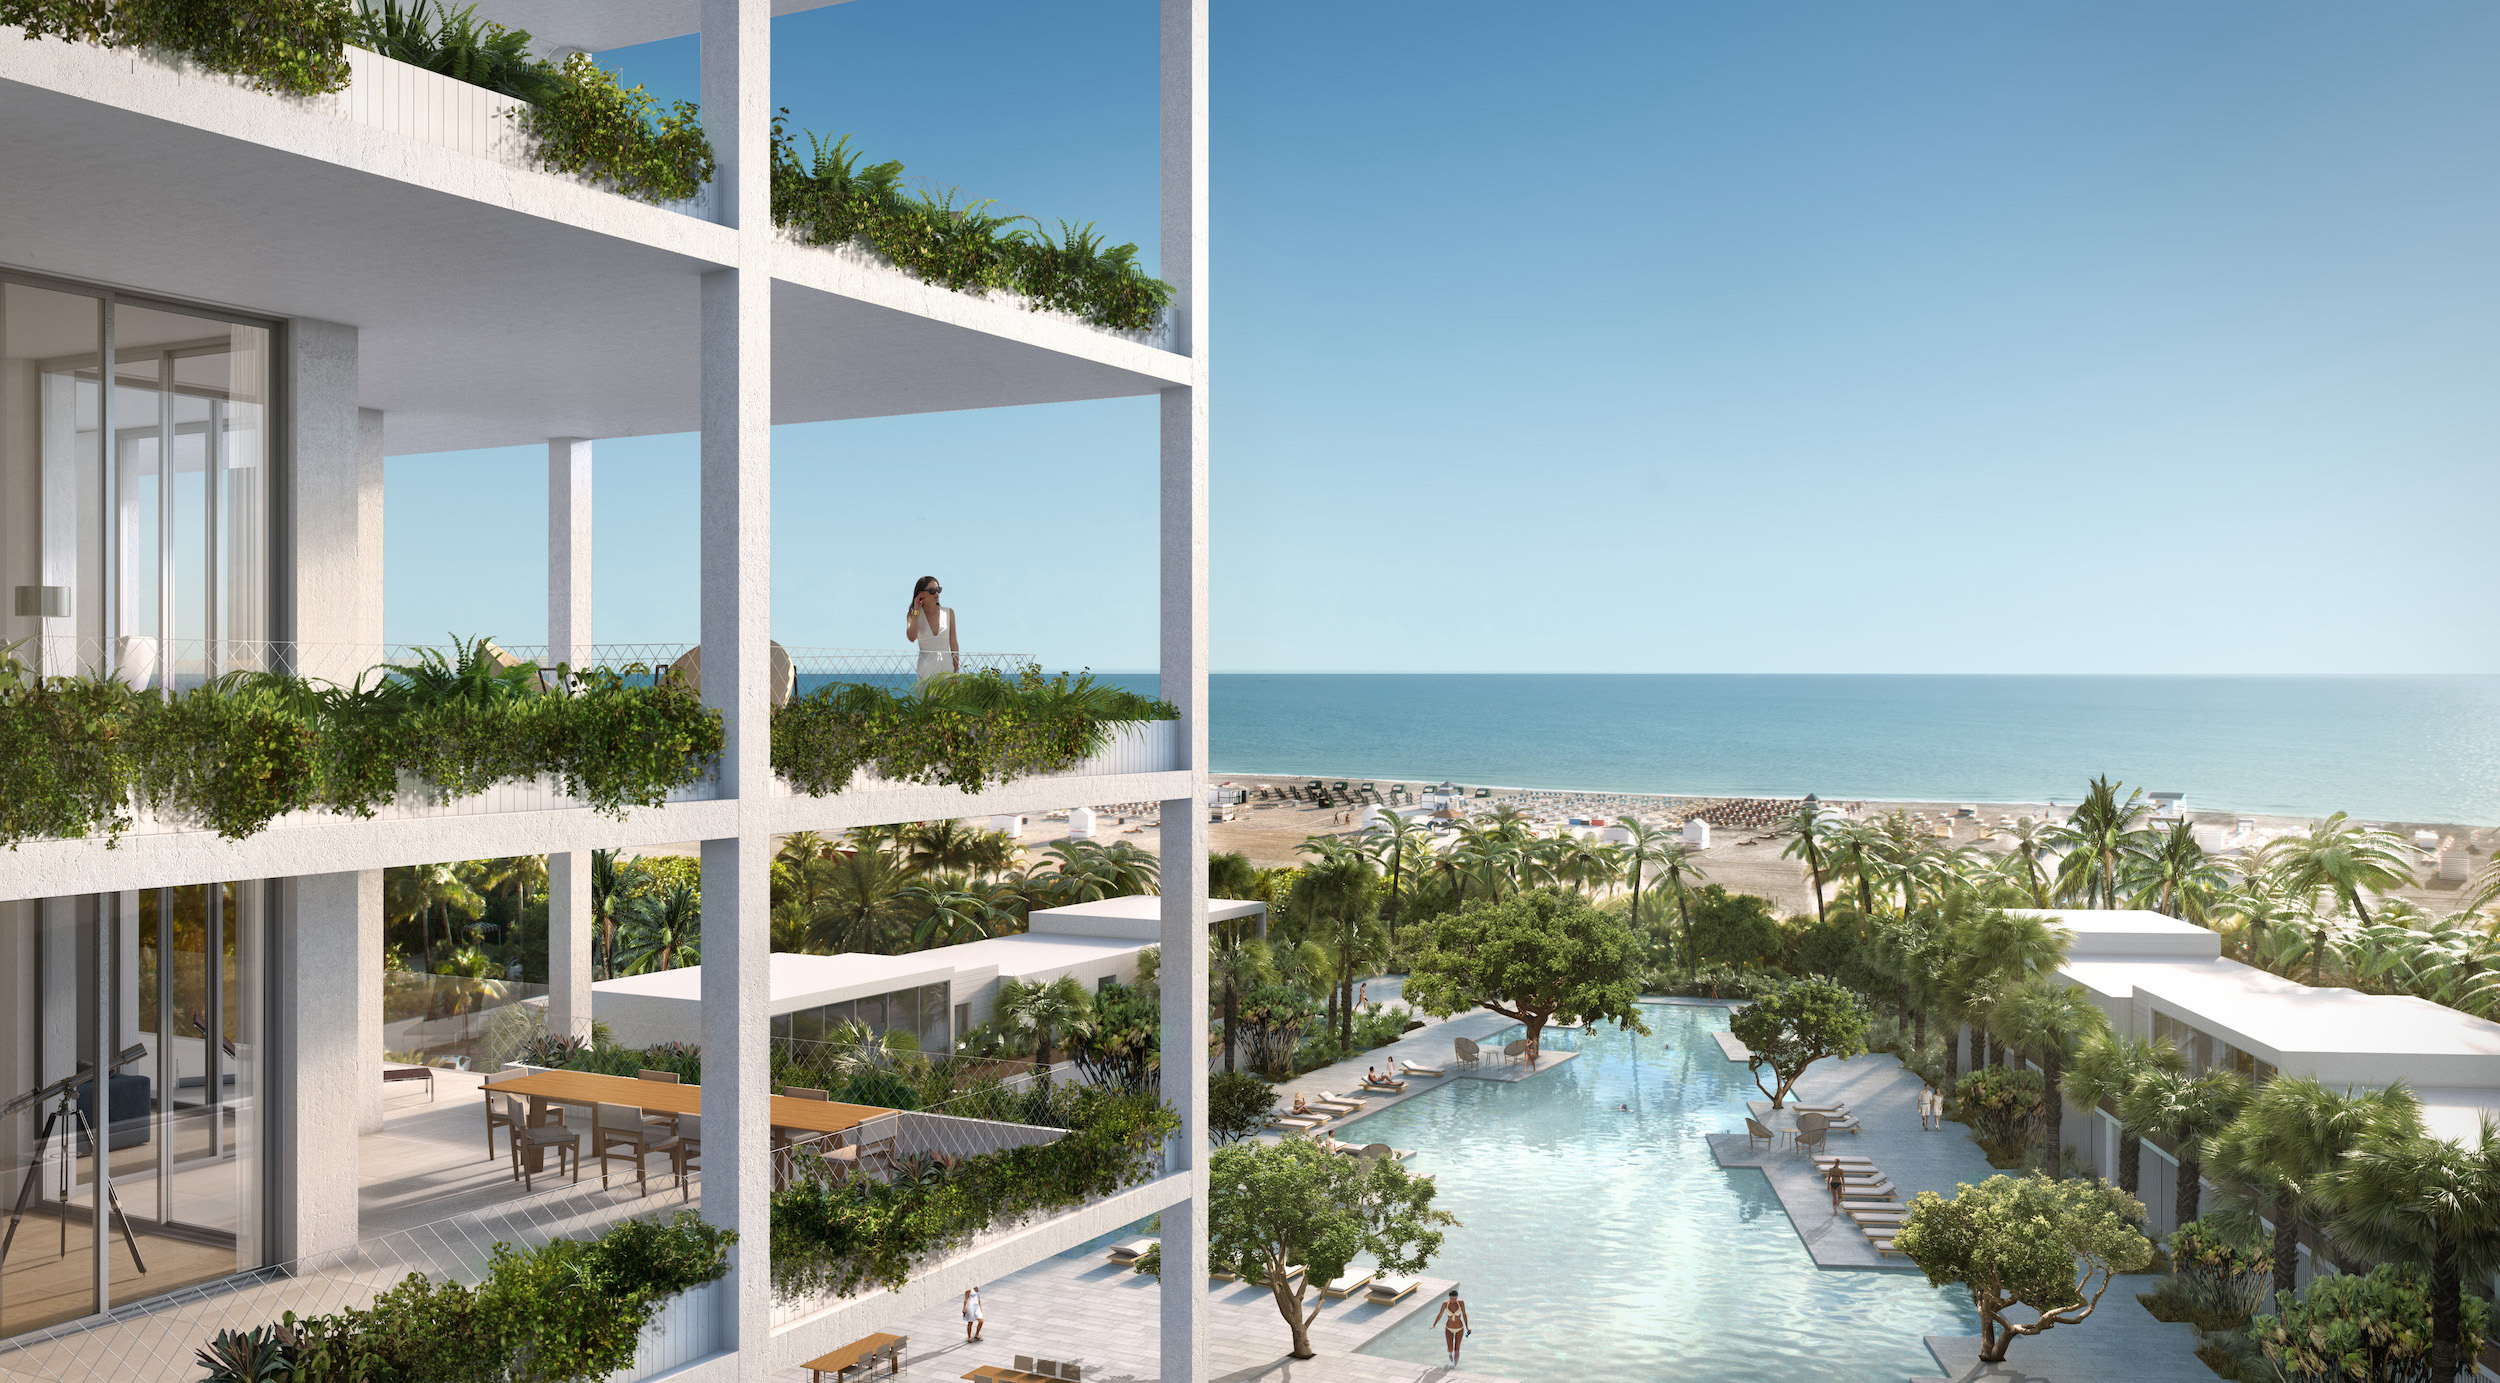 South florida renderings elysee rendering apeiron miami for Hotel the balcony